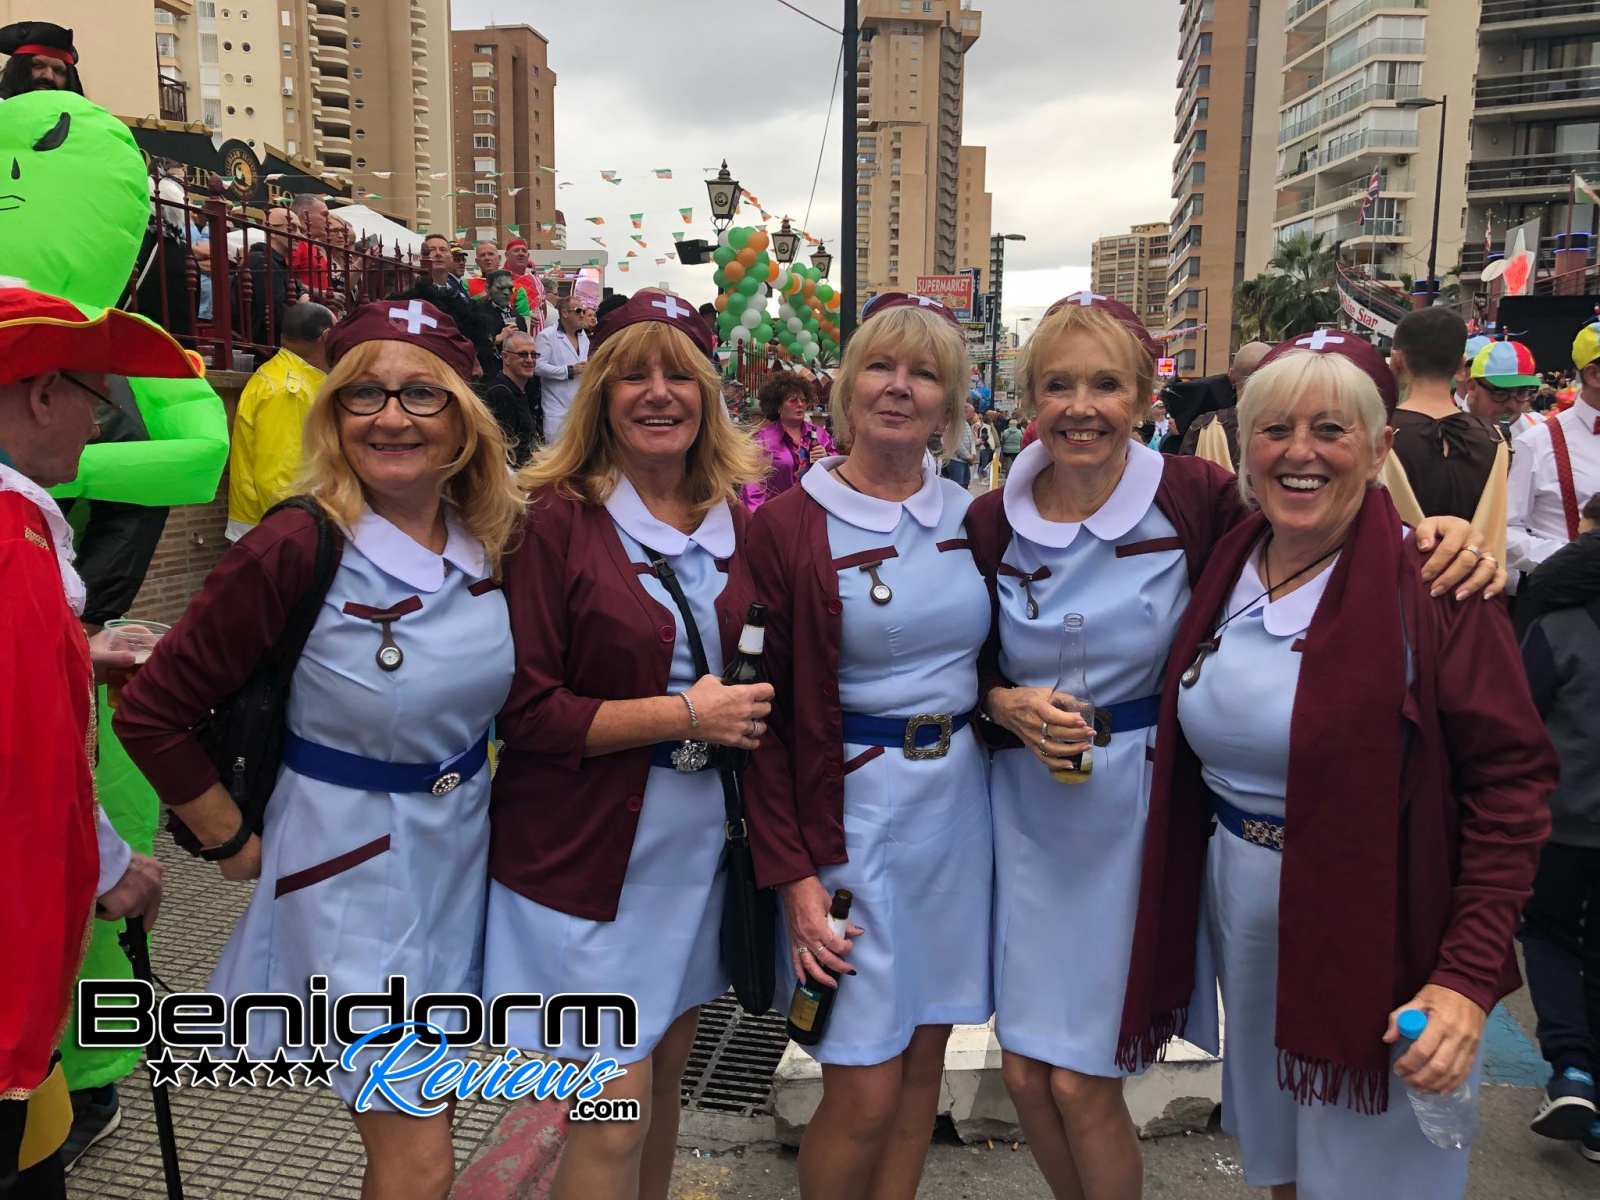 Benidorm-Fiestas-2019-Fancy-Dress-65